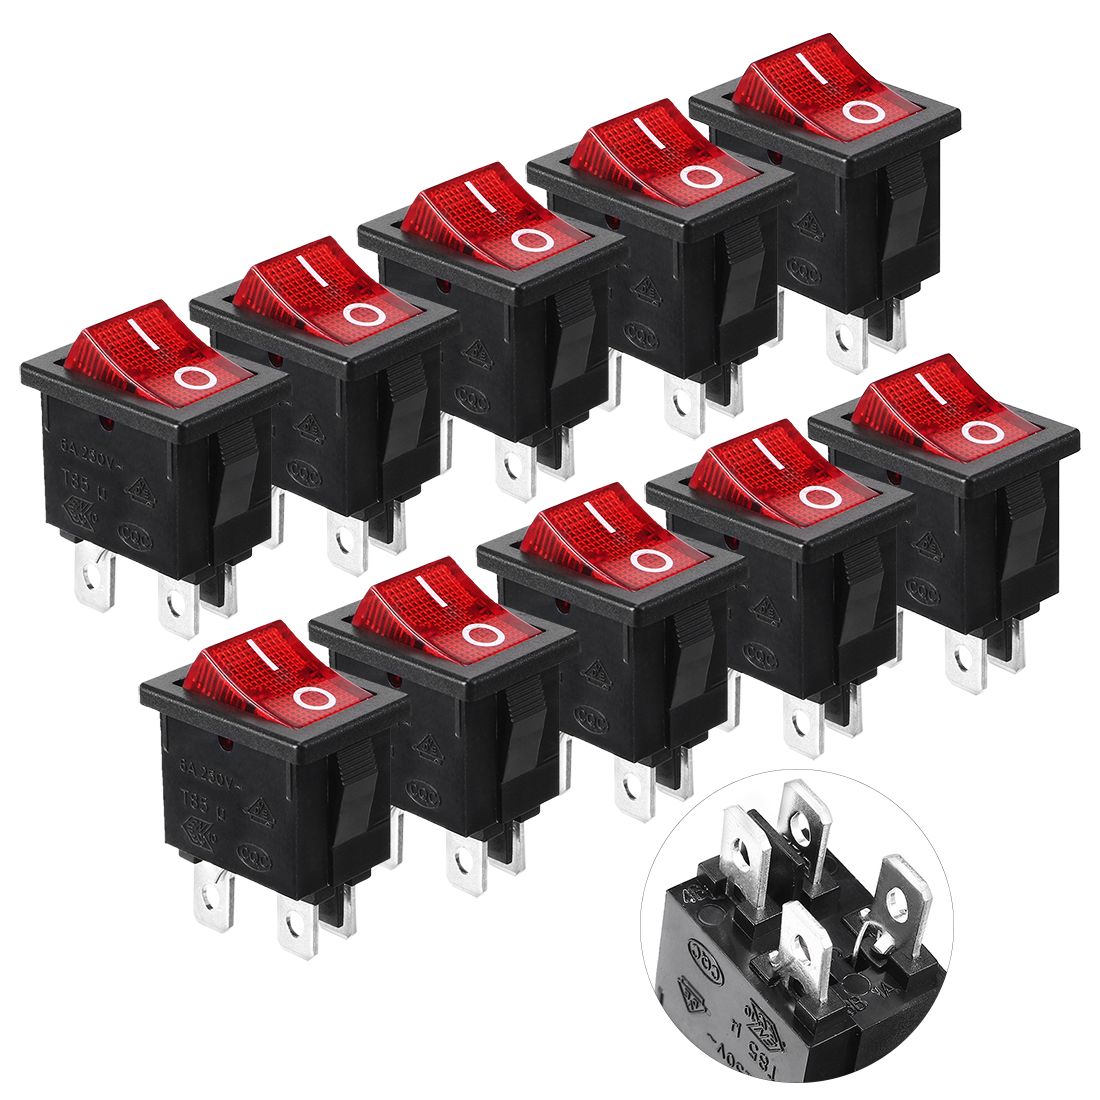 10 Pcs 125V/10A 250V/6A Red Indicator Light 4 Pin DPST ON OFF Rocker Boat Switch